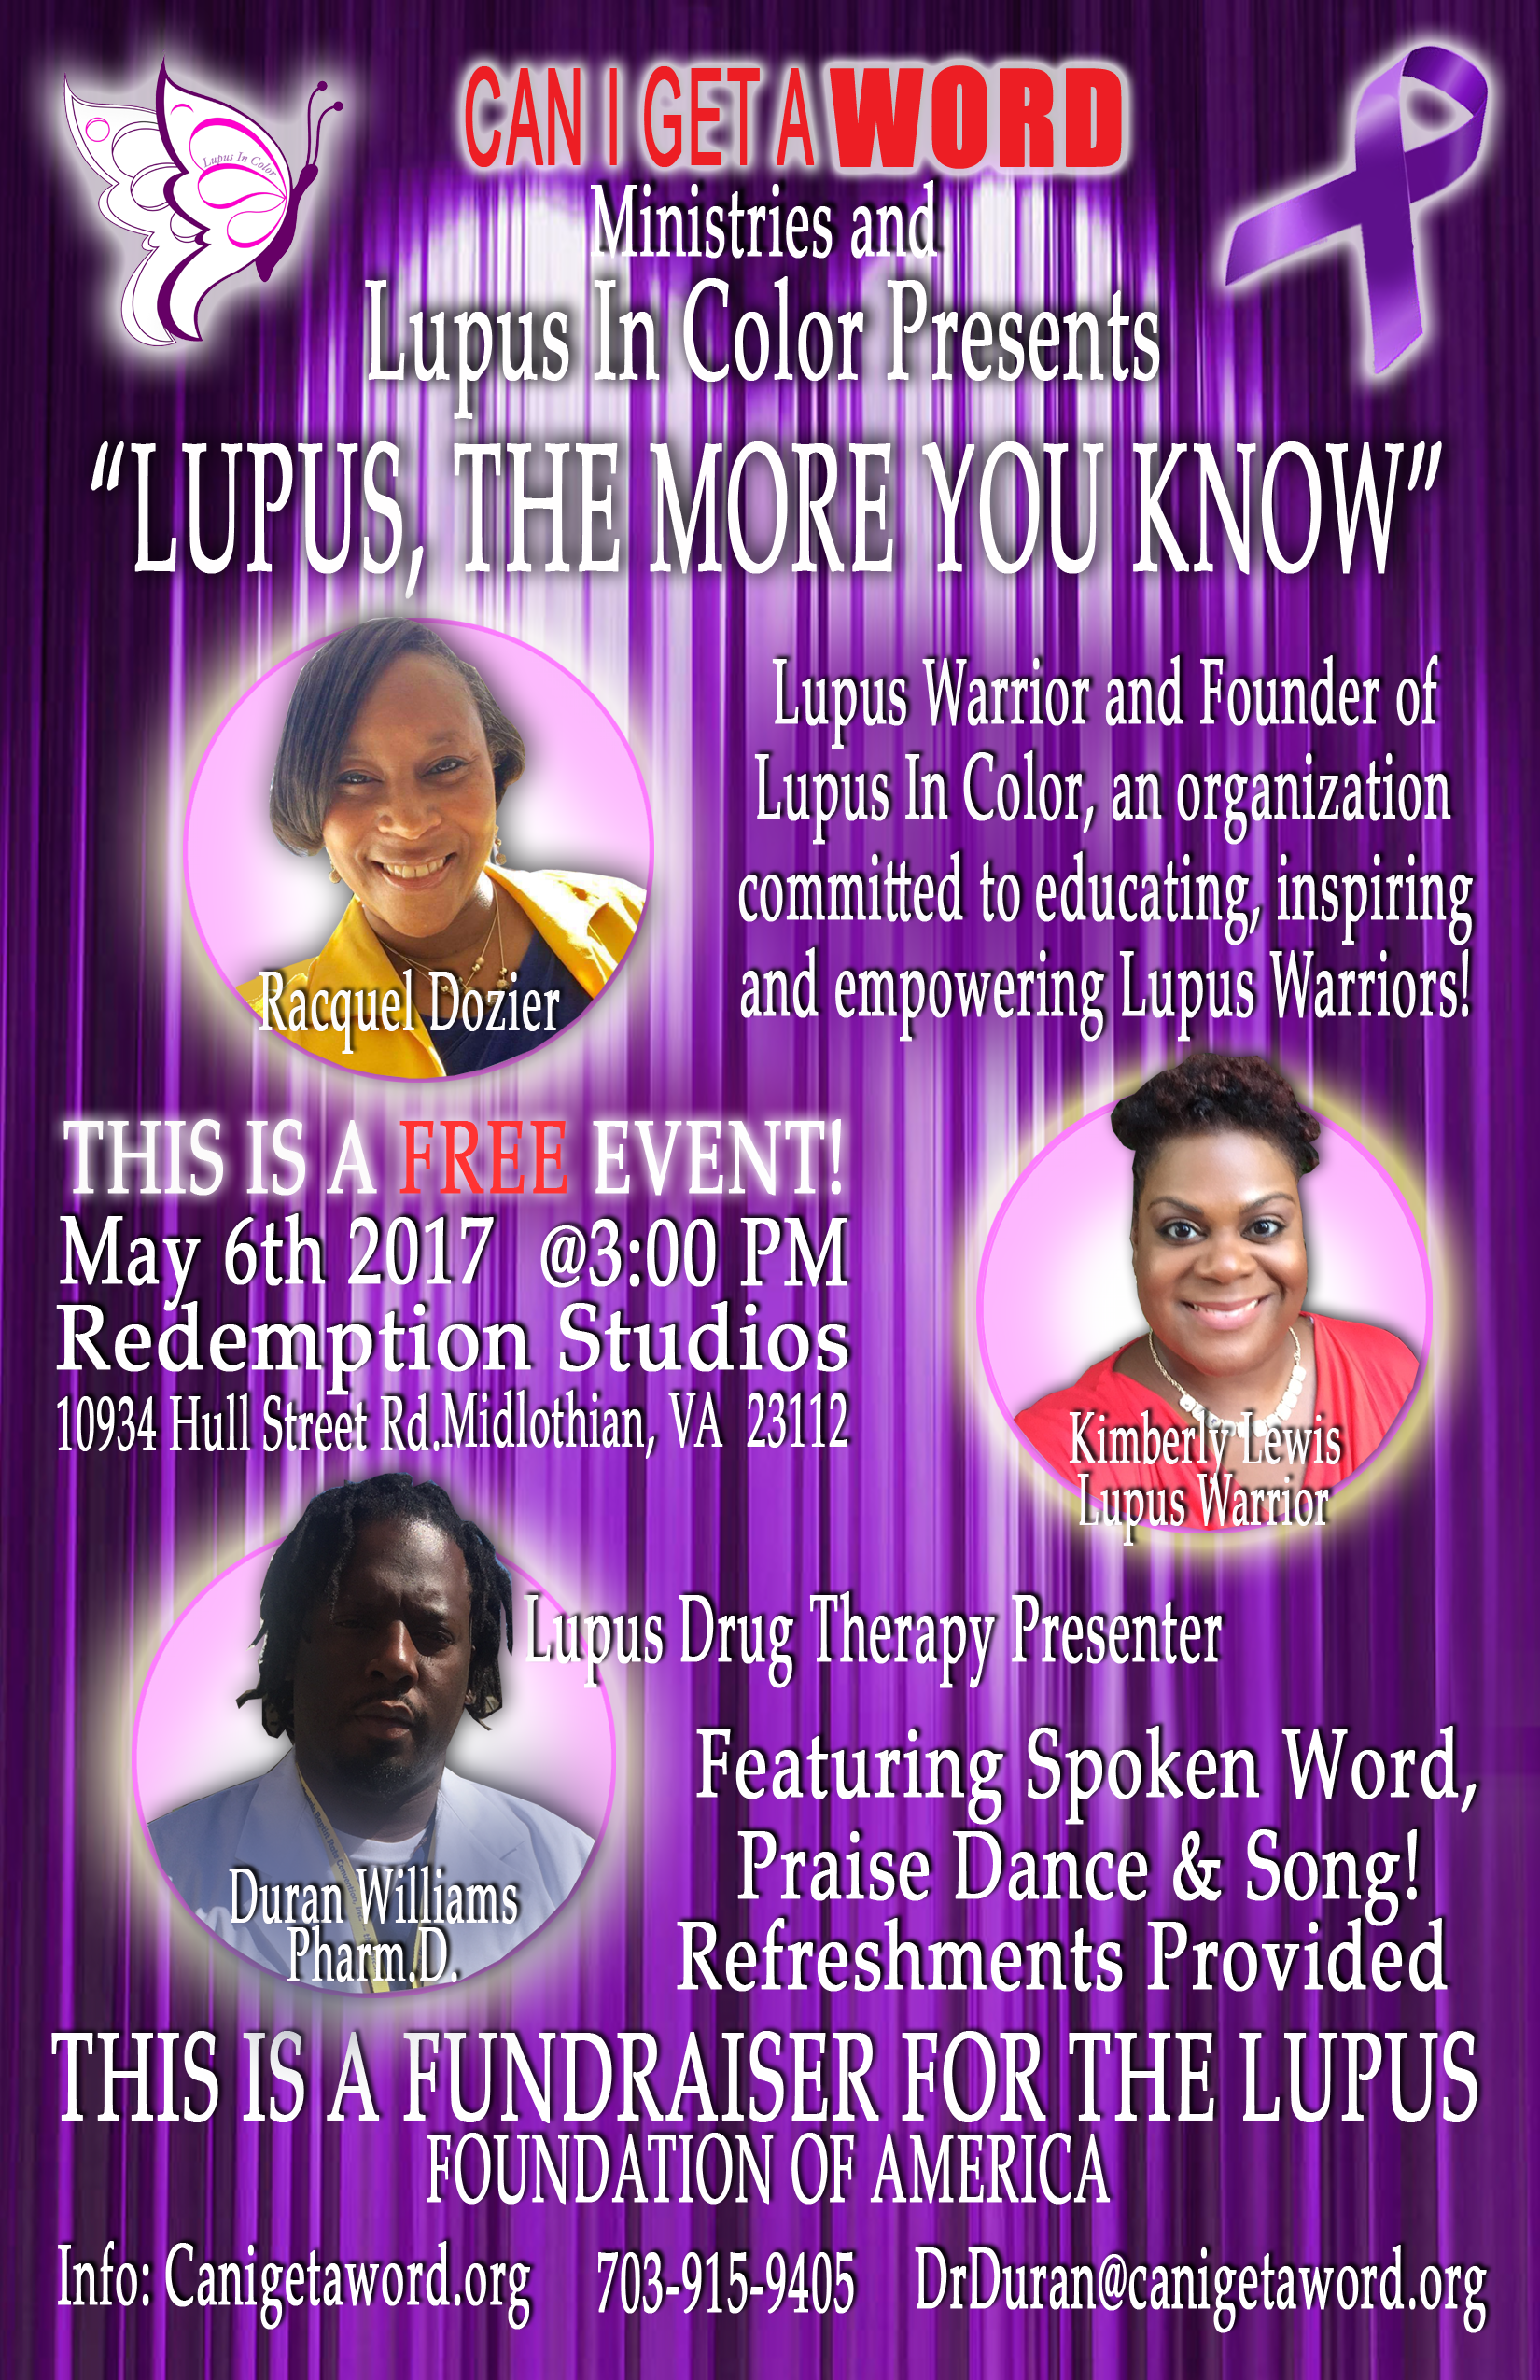 Lupus The More You Know